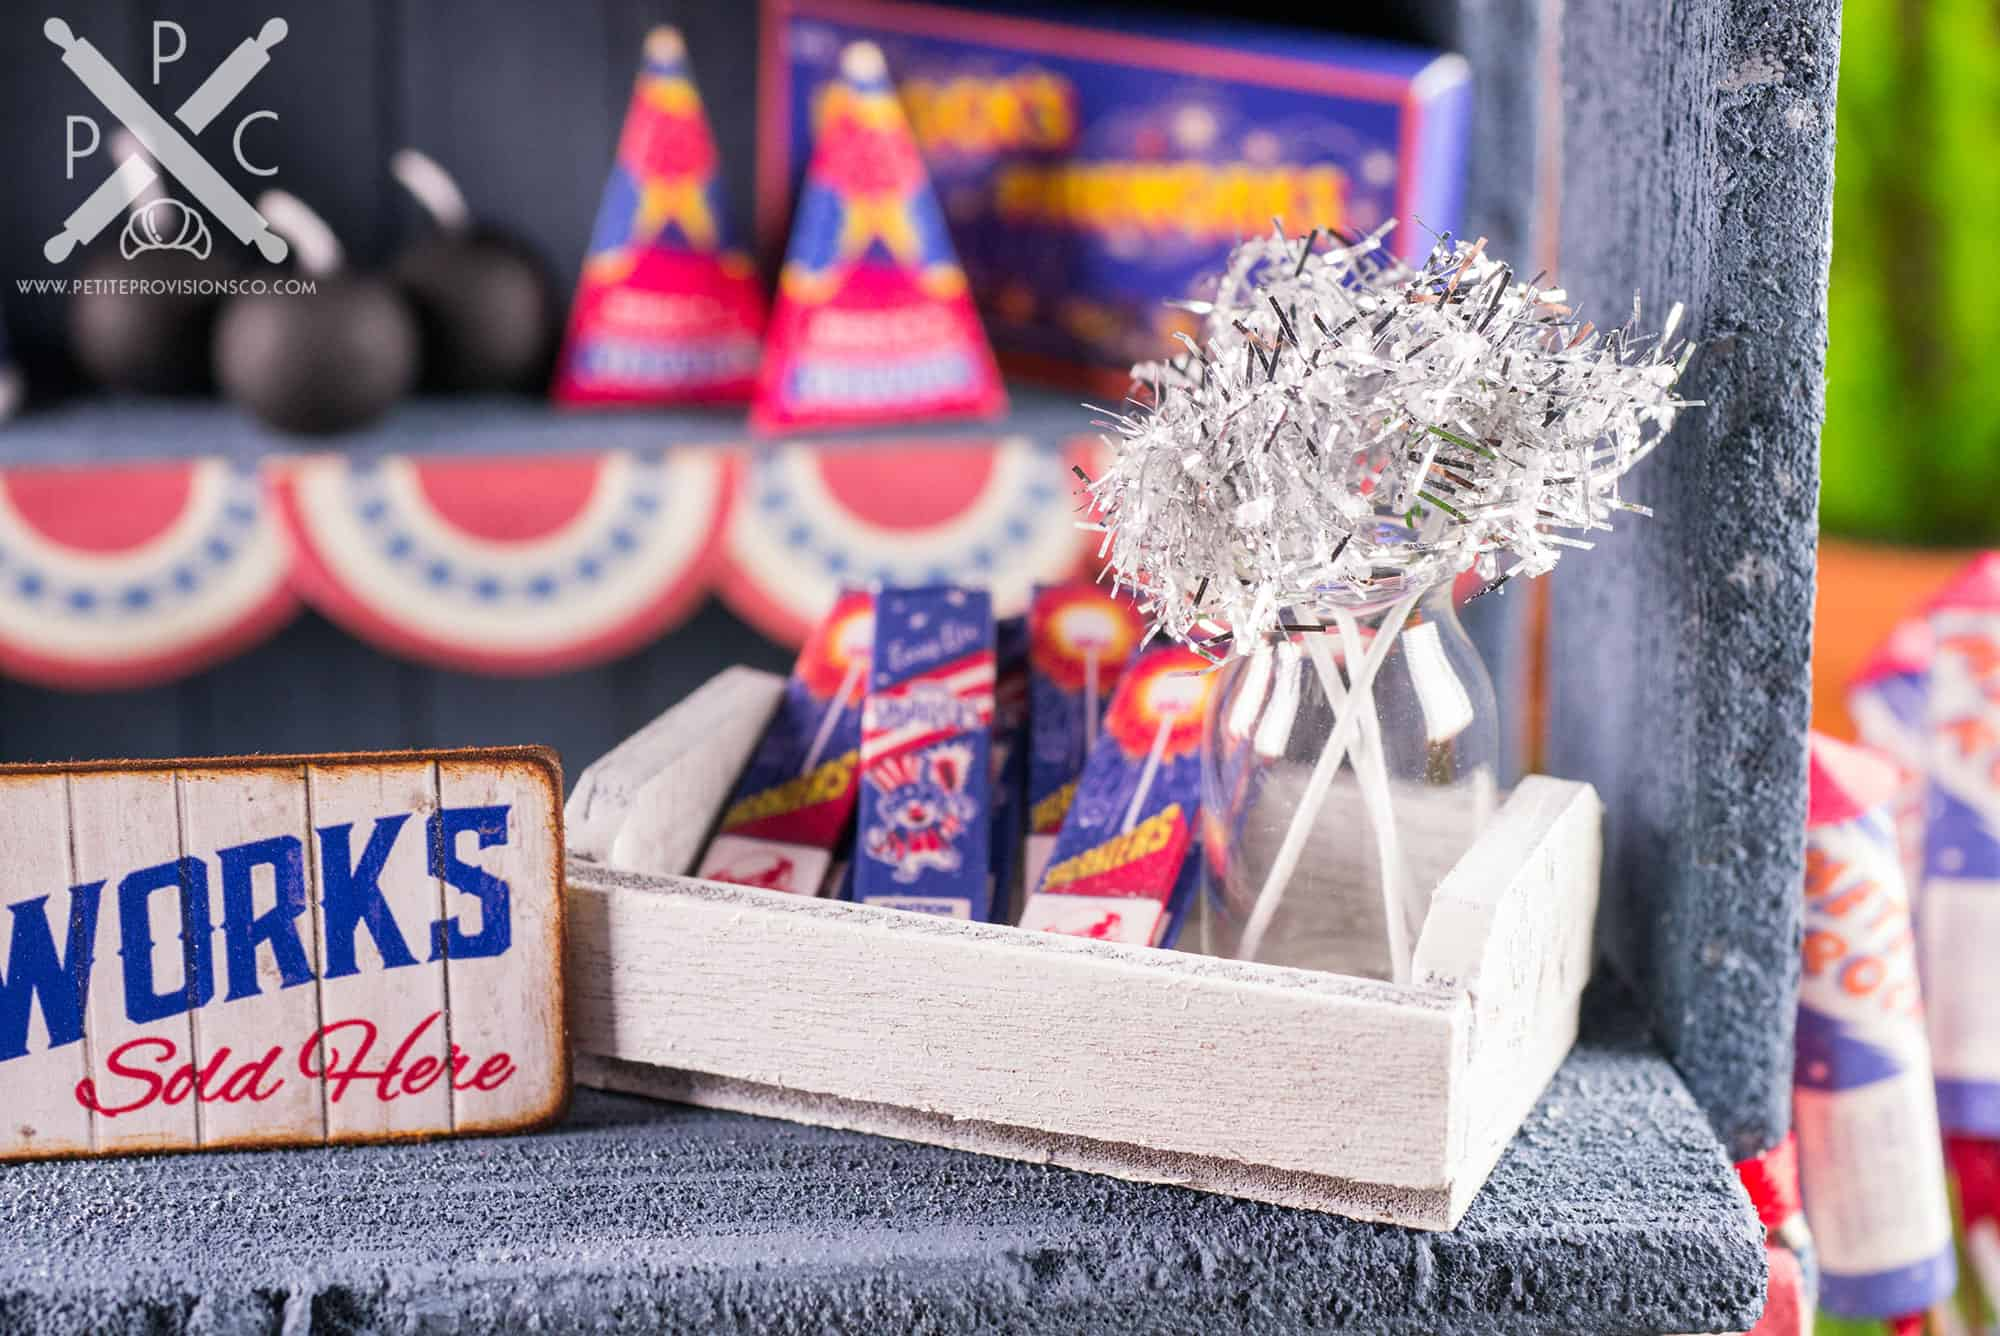 Dollhouse Miniature Roadside Fireworks Stand by The Petite Provisions Co. - Mini Sparklers